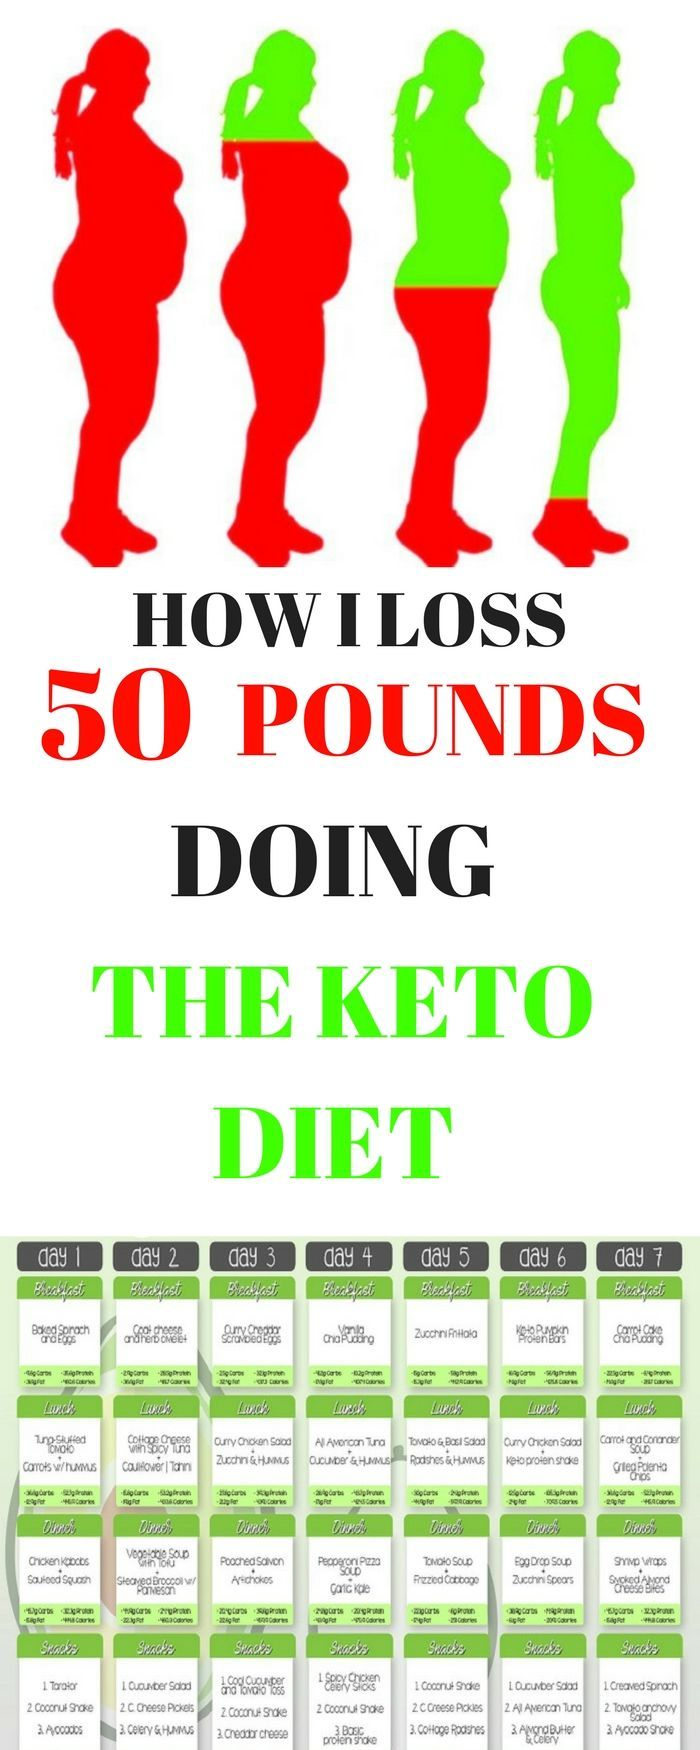 The Best Way To Achieve Ketosis Is Through Fasting